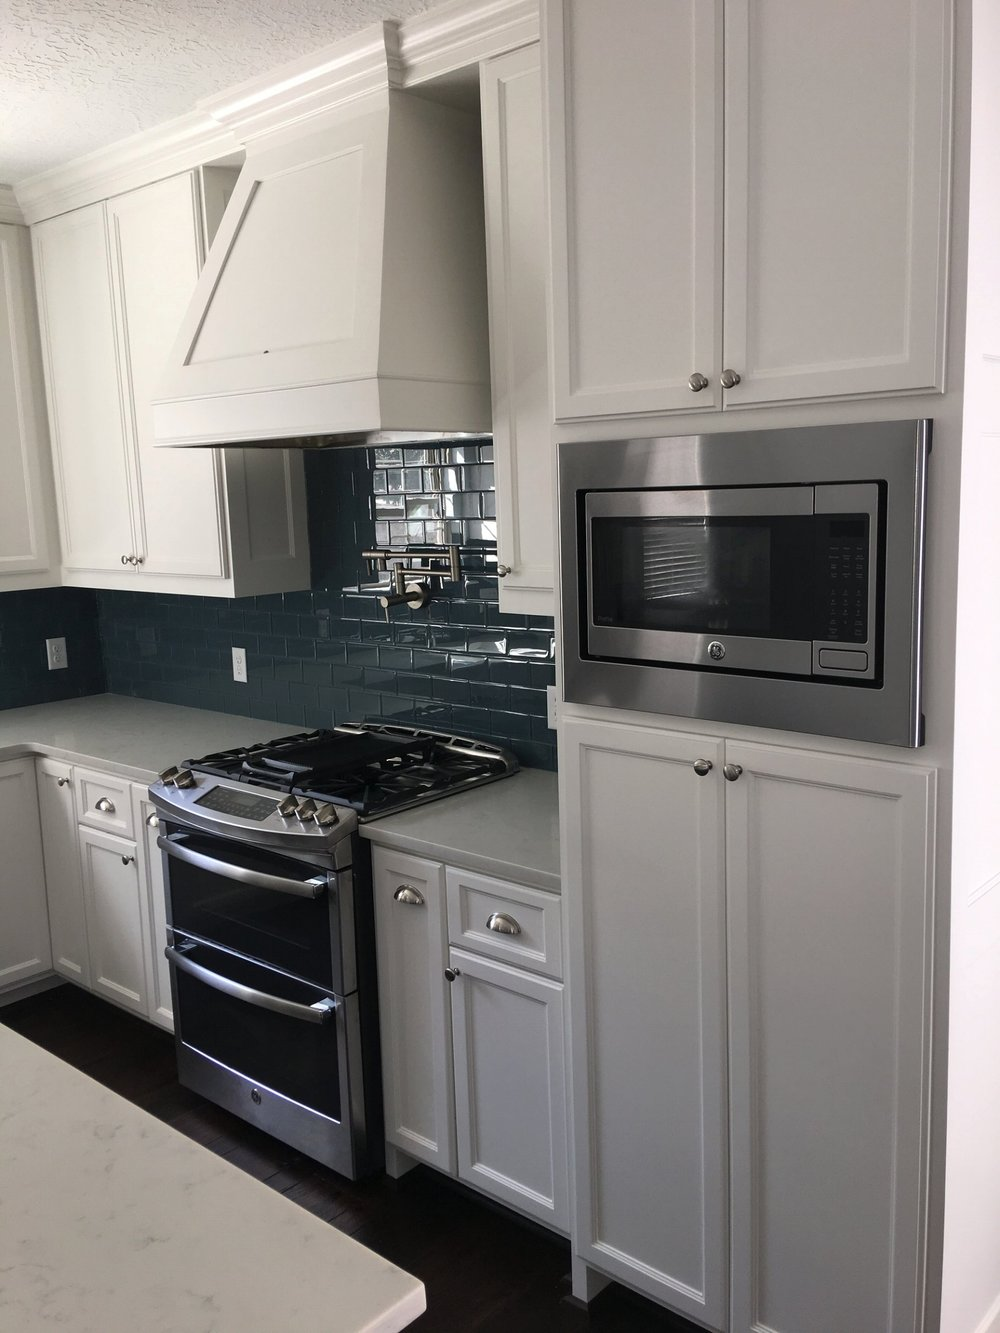 Kitchen Cabinetry.jpg